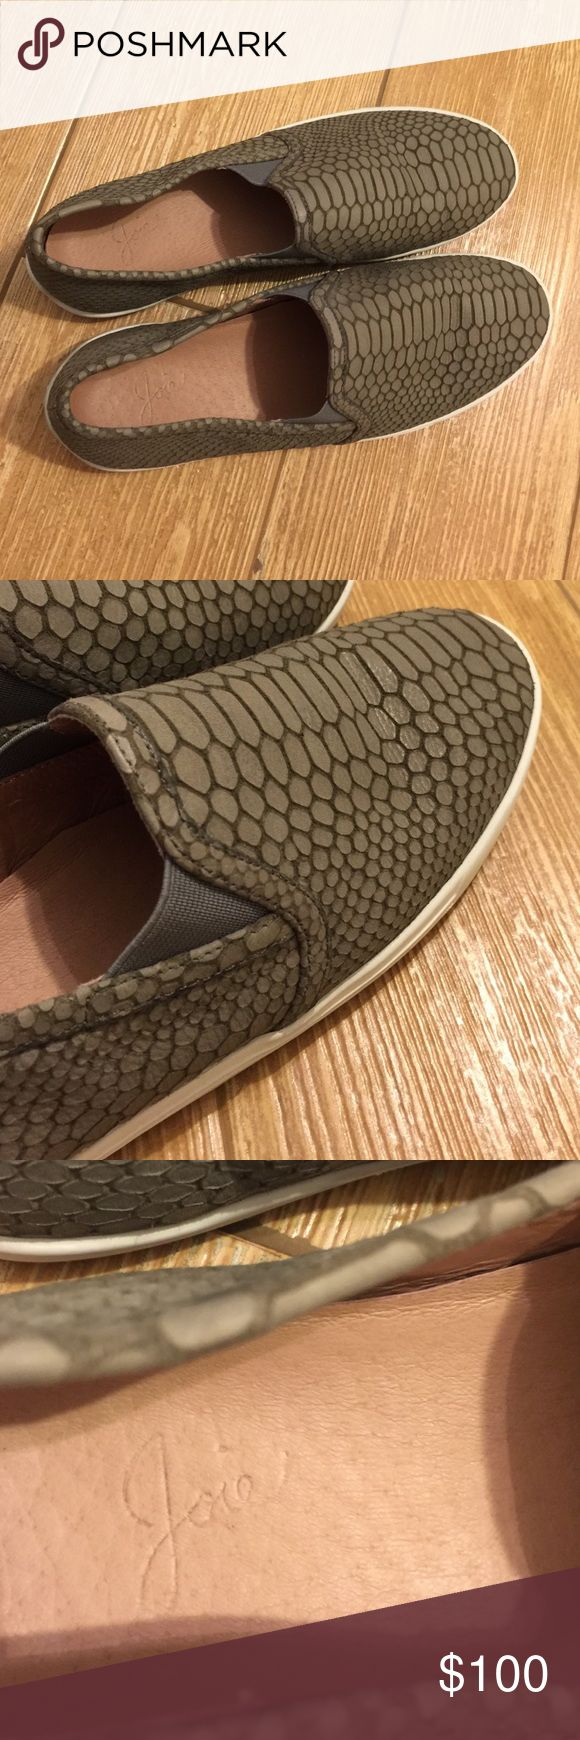 Joie kidmore sneaker Hunter green, leather material, great condition. ACCEPTING OFFERS Joie Shoes Flats & Loafers